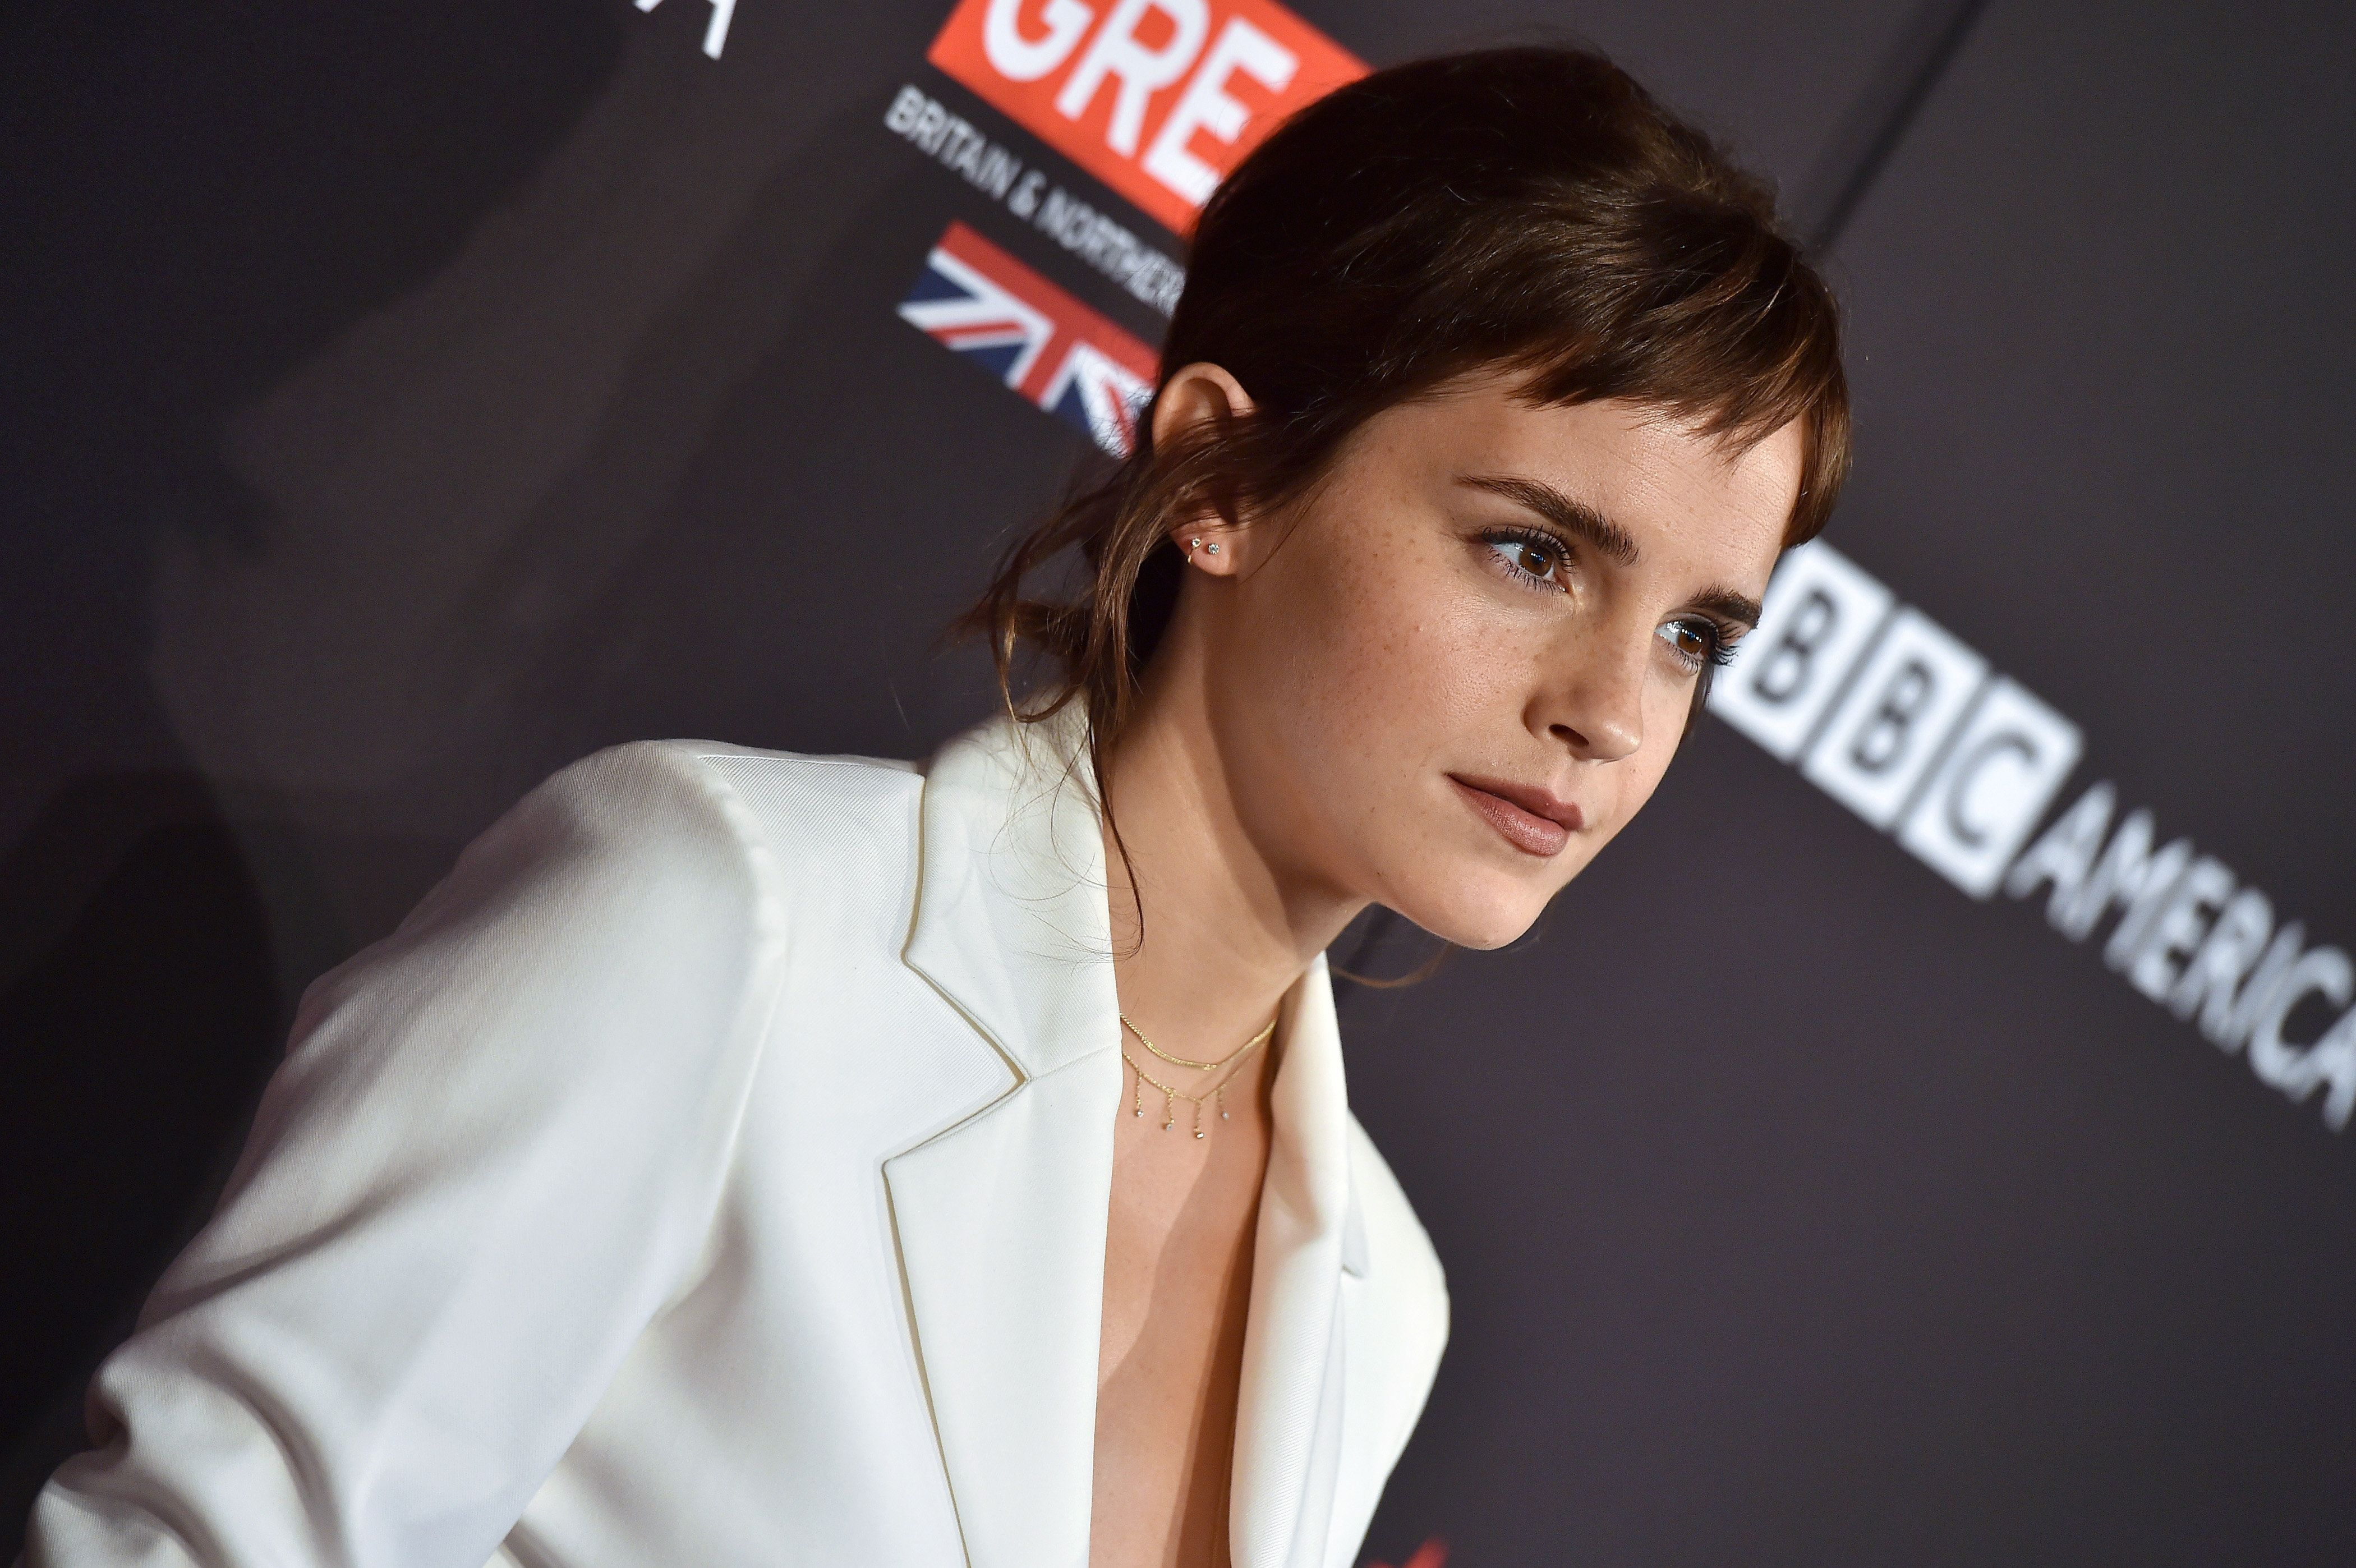 Emma Watson Claims She's Experienced 'Full Spectrum' Of Sexual